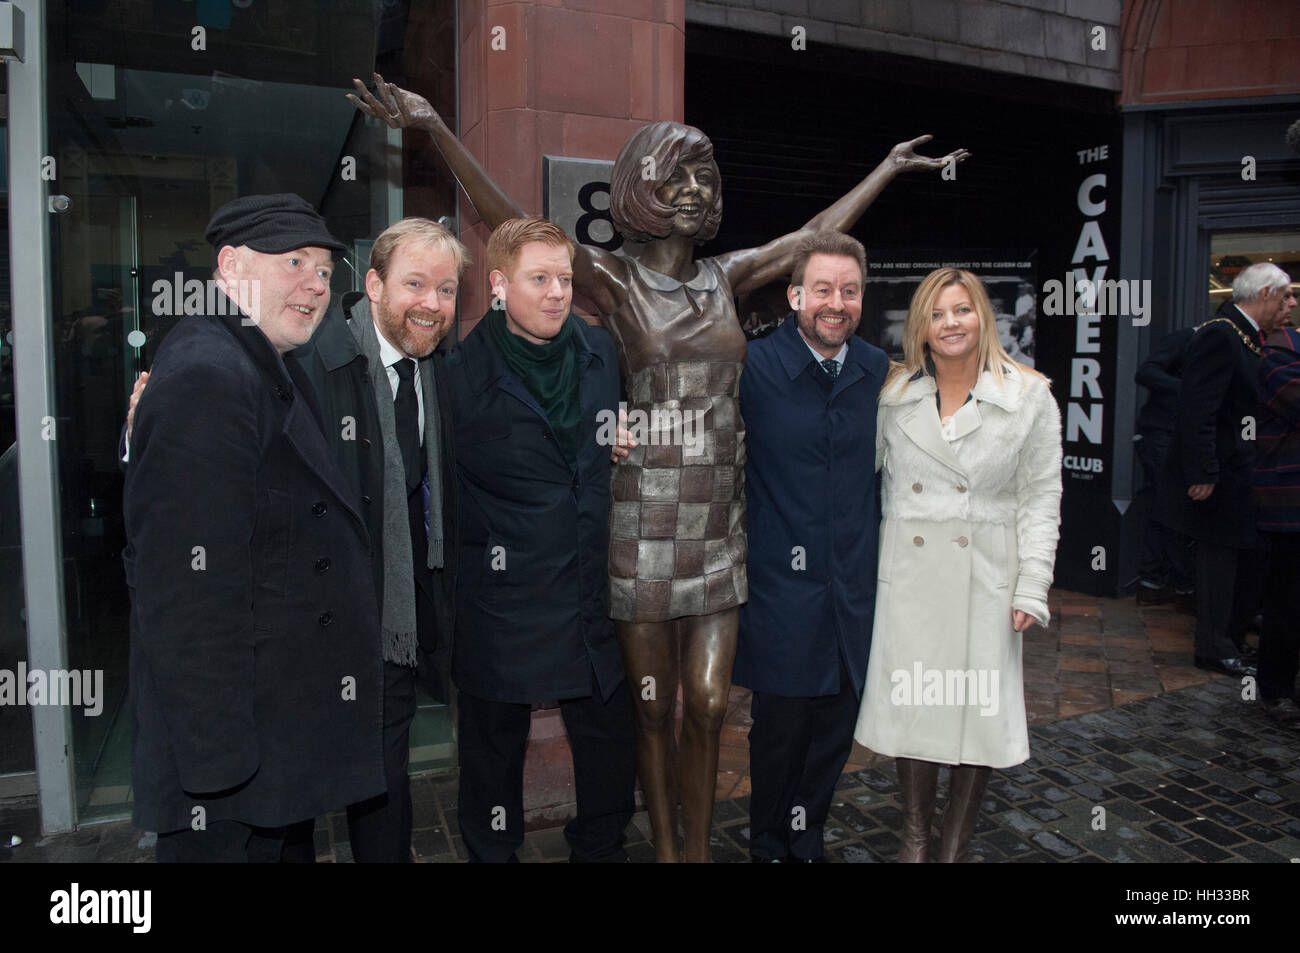 Liverpool, UK. 16th January 2017. Jack, Ben and Robert Willis, sons of the late star, Cilla Black, together with Stock Foto